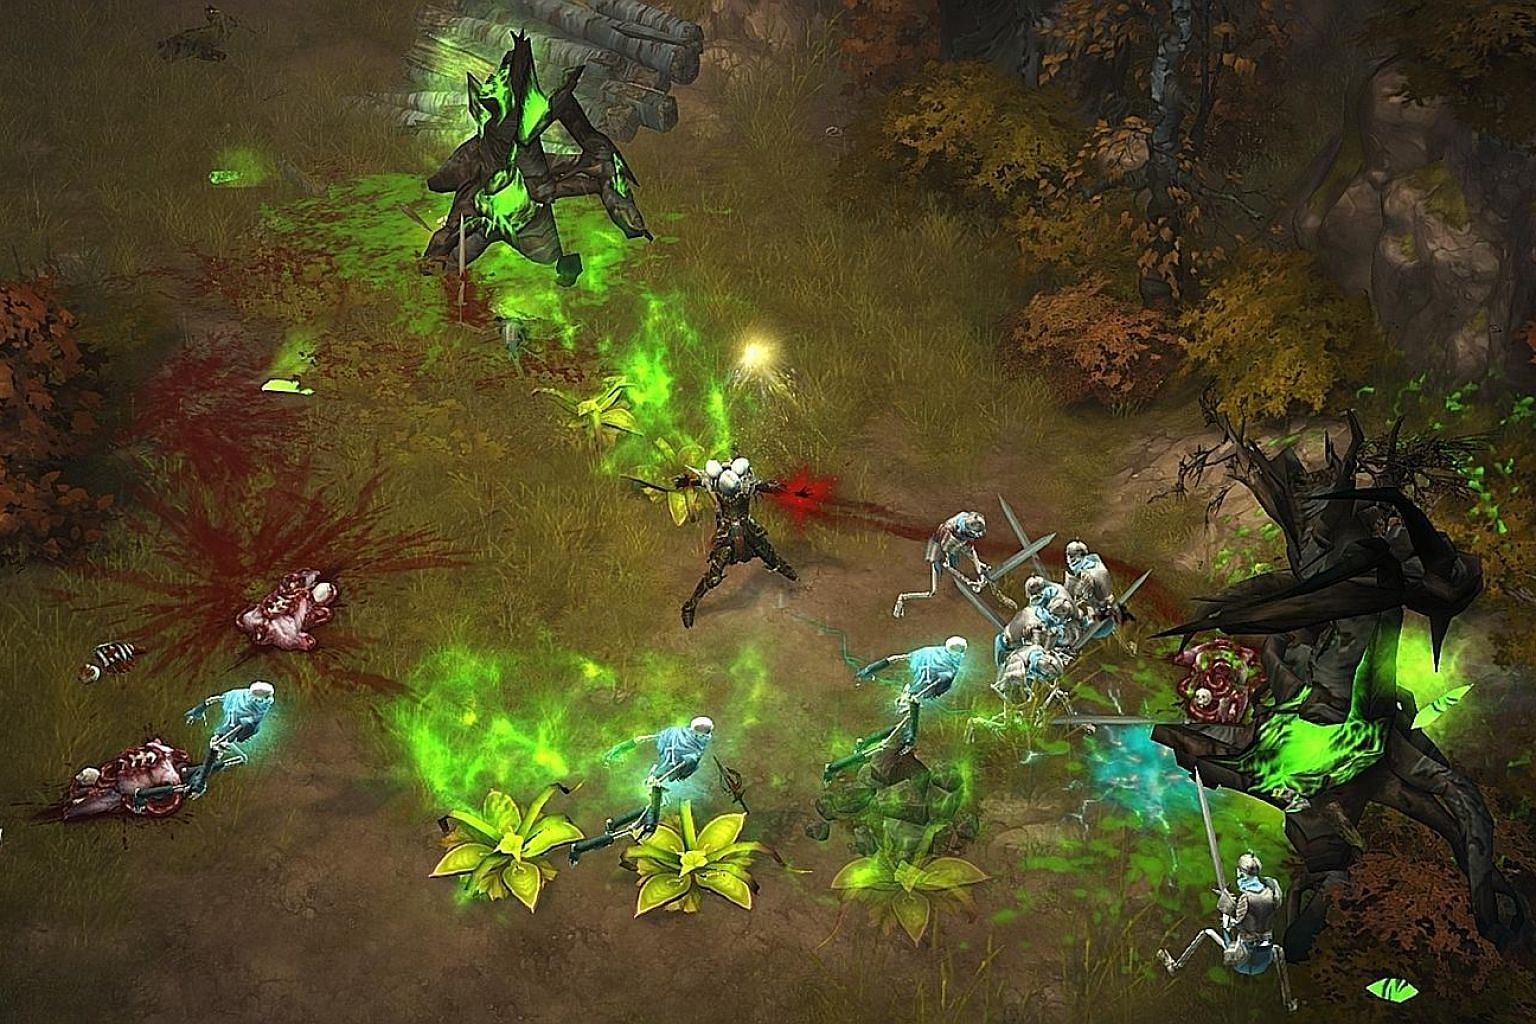 In Diablo III: Rise Of The Necromancer, it is great fun to see your skeleton army doing all the dirty work for you without your character being in the thick of the action.